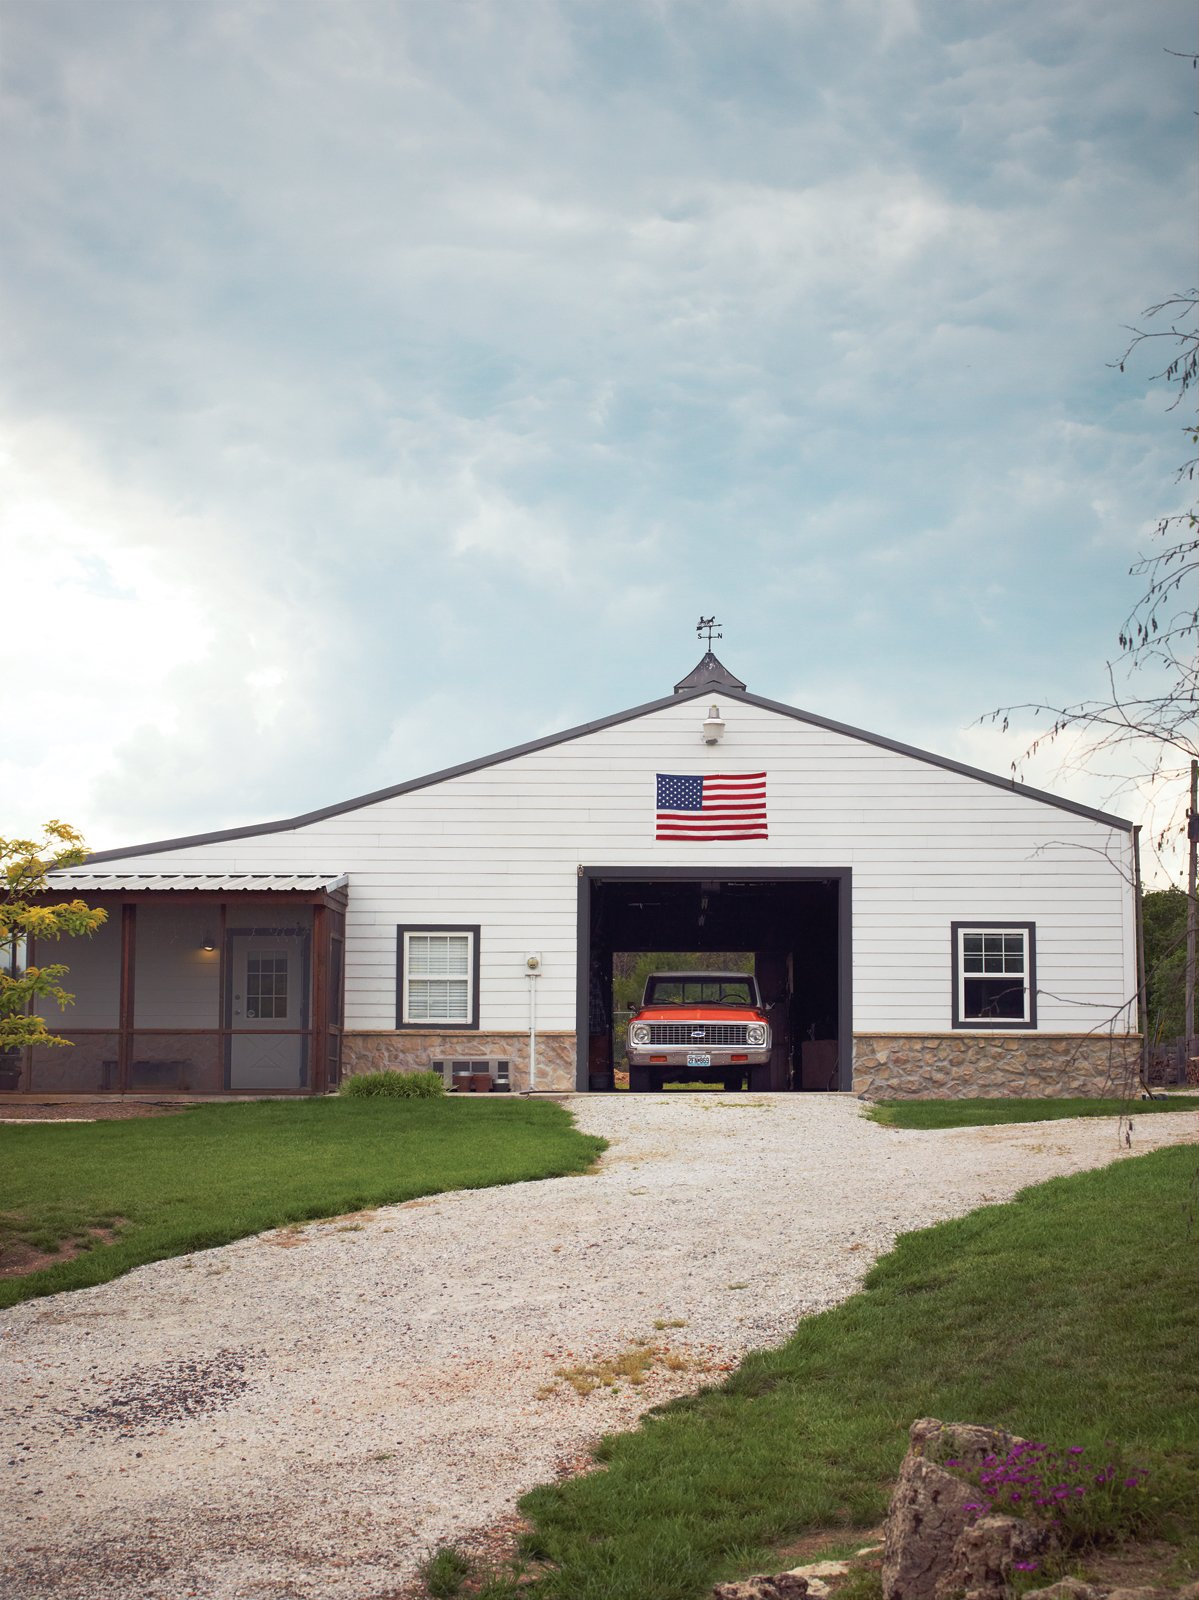 Behind the main house is the barn, where Paul builds furniture and works on cars Tagged: Outdoor. A Modern Farmhouse Recalls Old-Time Americana - Photo 5 of 10